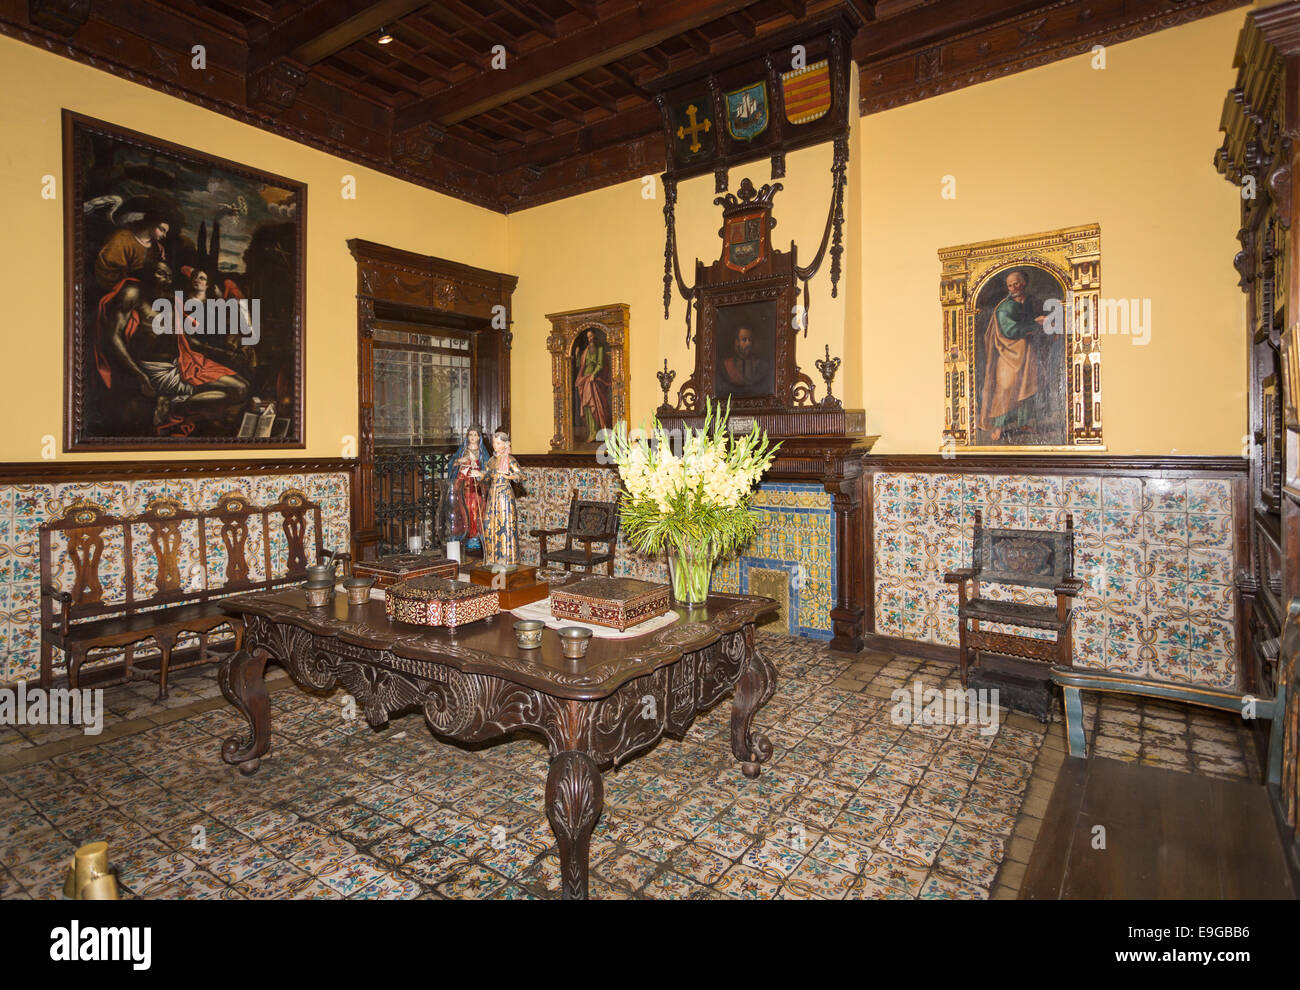 Room With Wooden Table And Paintings In The Historic Colonial House, Casa  Solariega De Aliaga, Lima, Peru